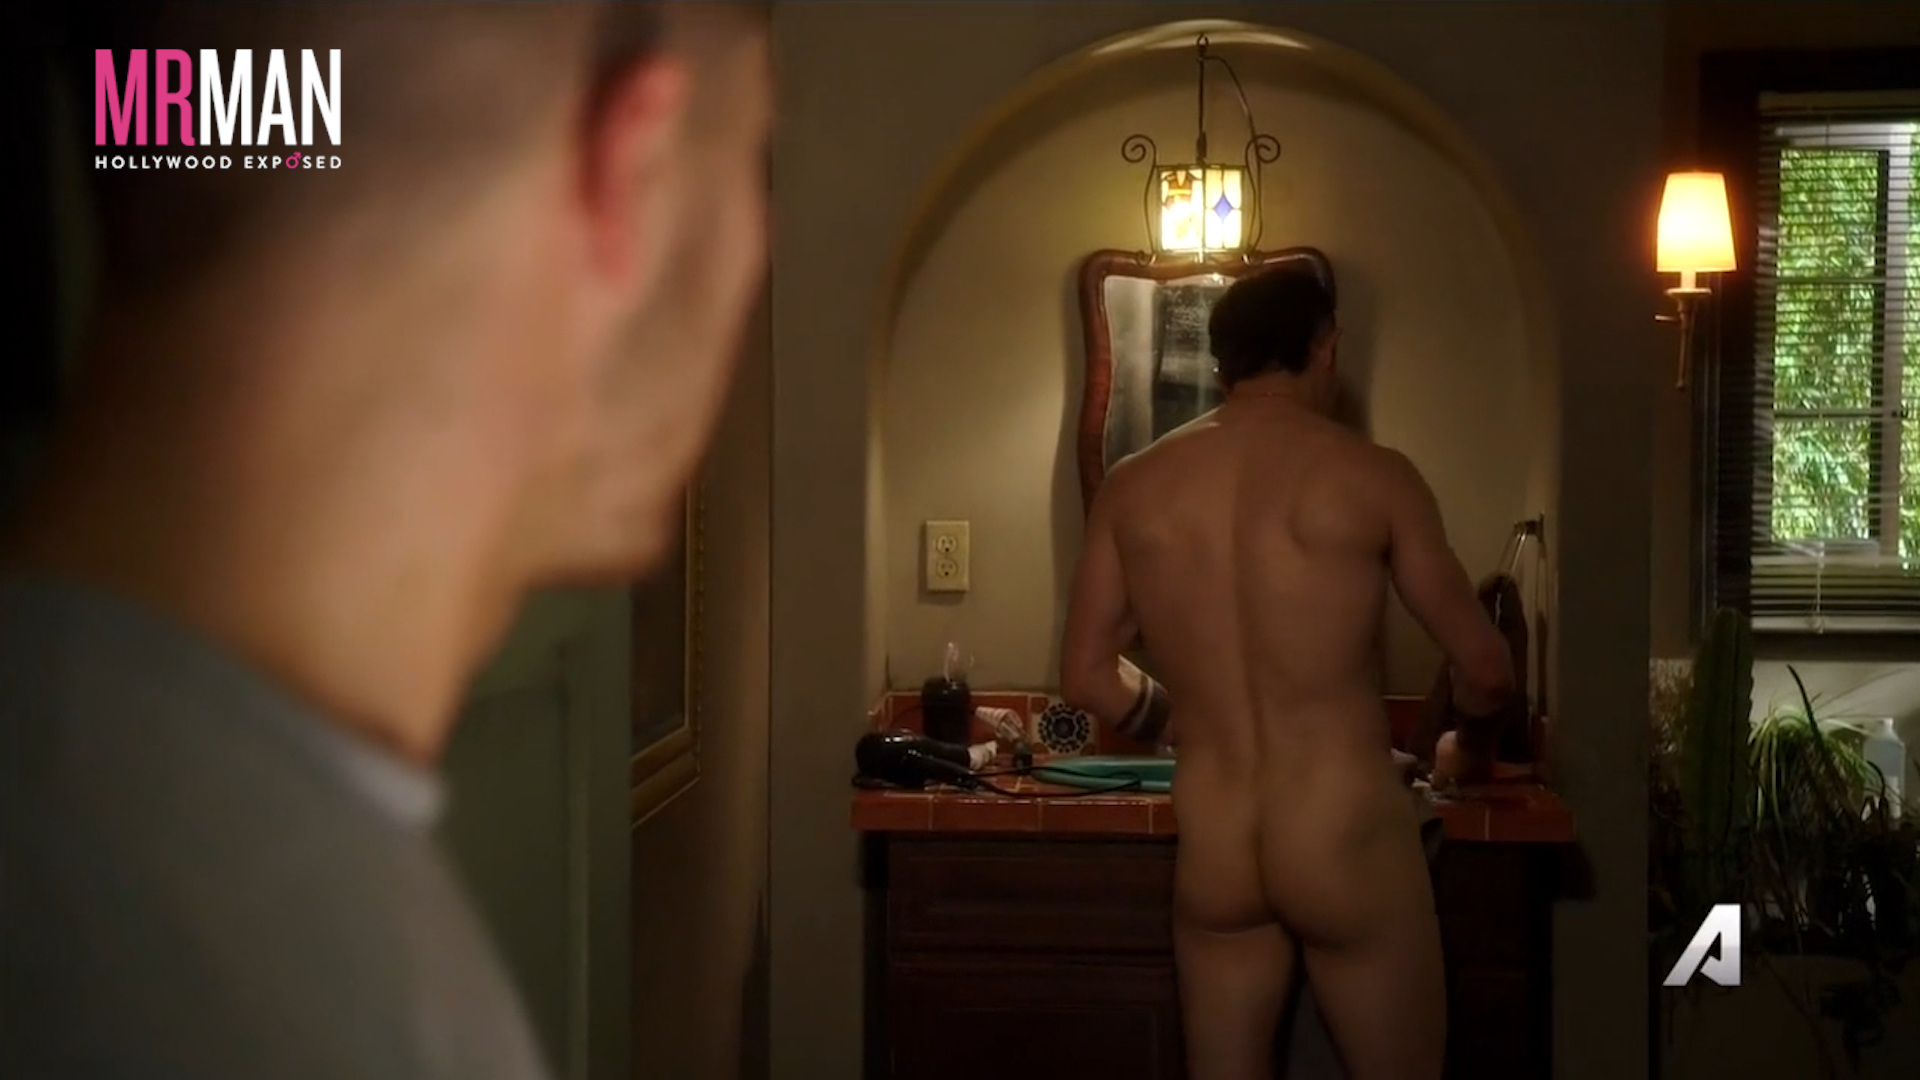 TV Dudity Recap Delivers So Much Hot Celeb Ass